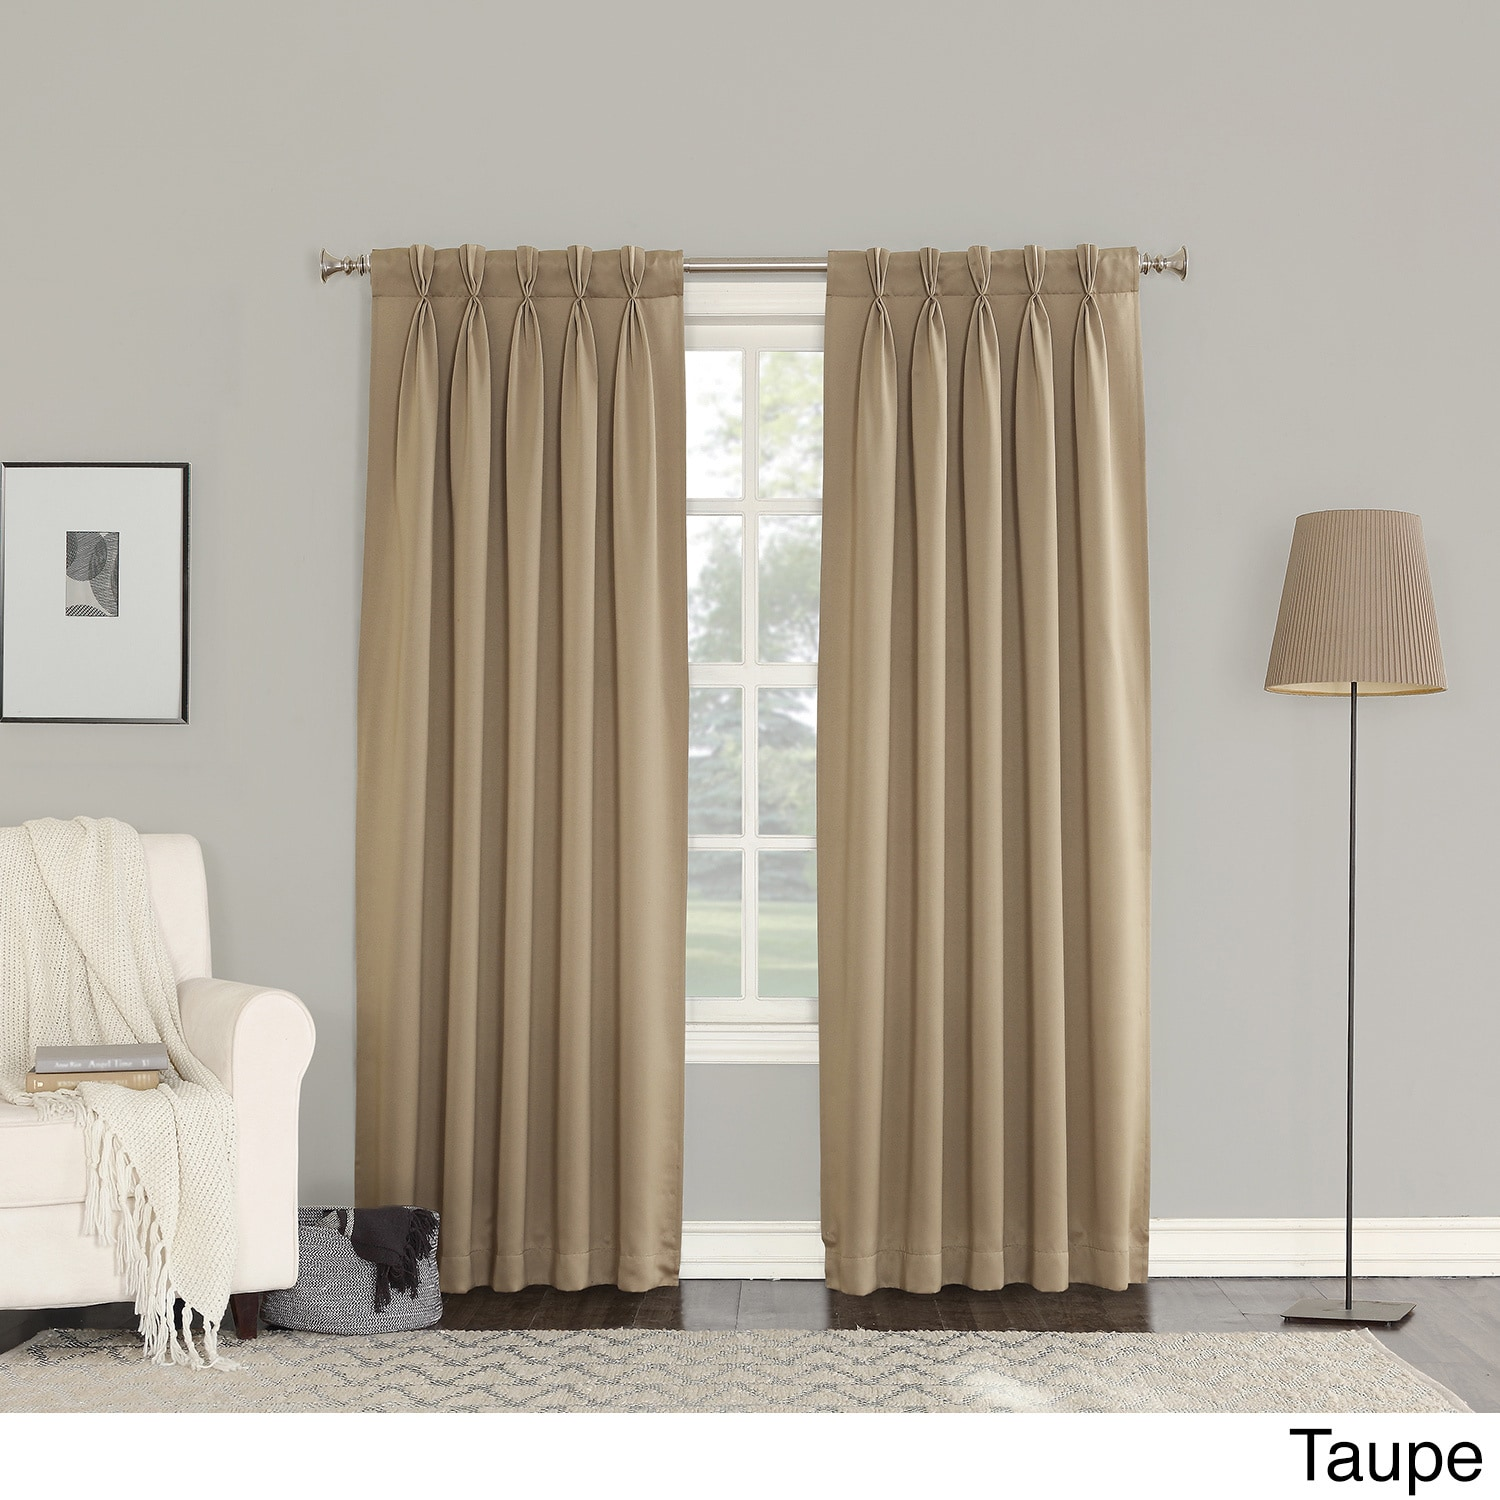 pin amazon to for with rings luxury traverse sale hooks without hang pleated how car curtain full and privacy com clips pleat elegant drapes photo rods lyon french on bedroom of size pinch rod curtains